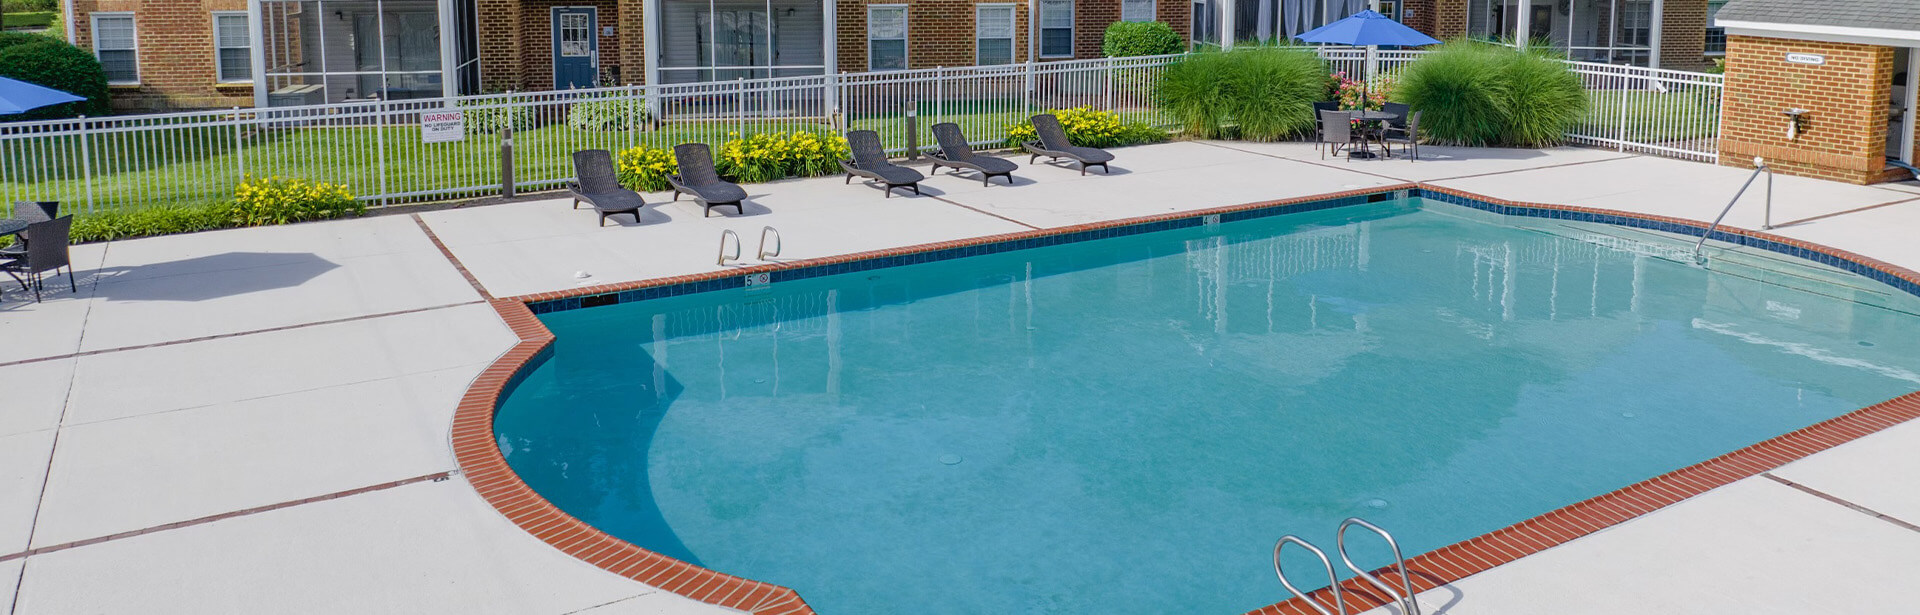 Rose Hall Apartments Apartment Homes In Virginia Beach Va 3 Bedroom Houses For Rent